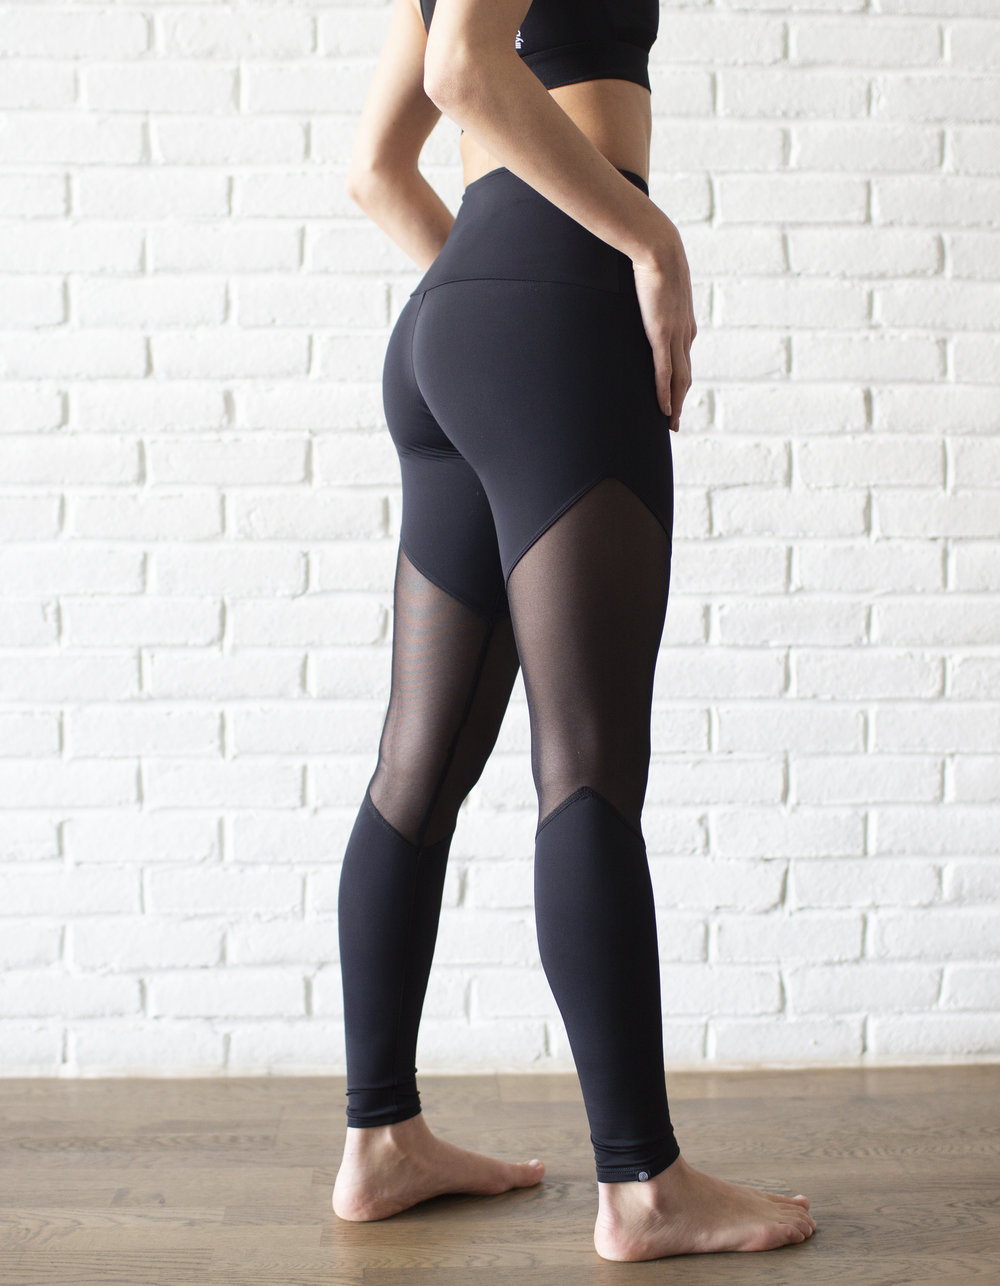 leggings5-3.jpg